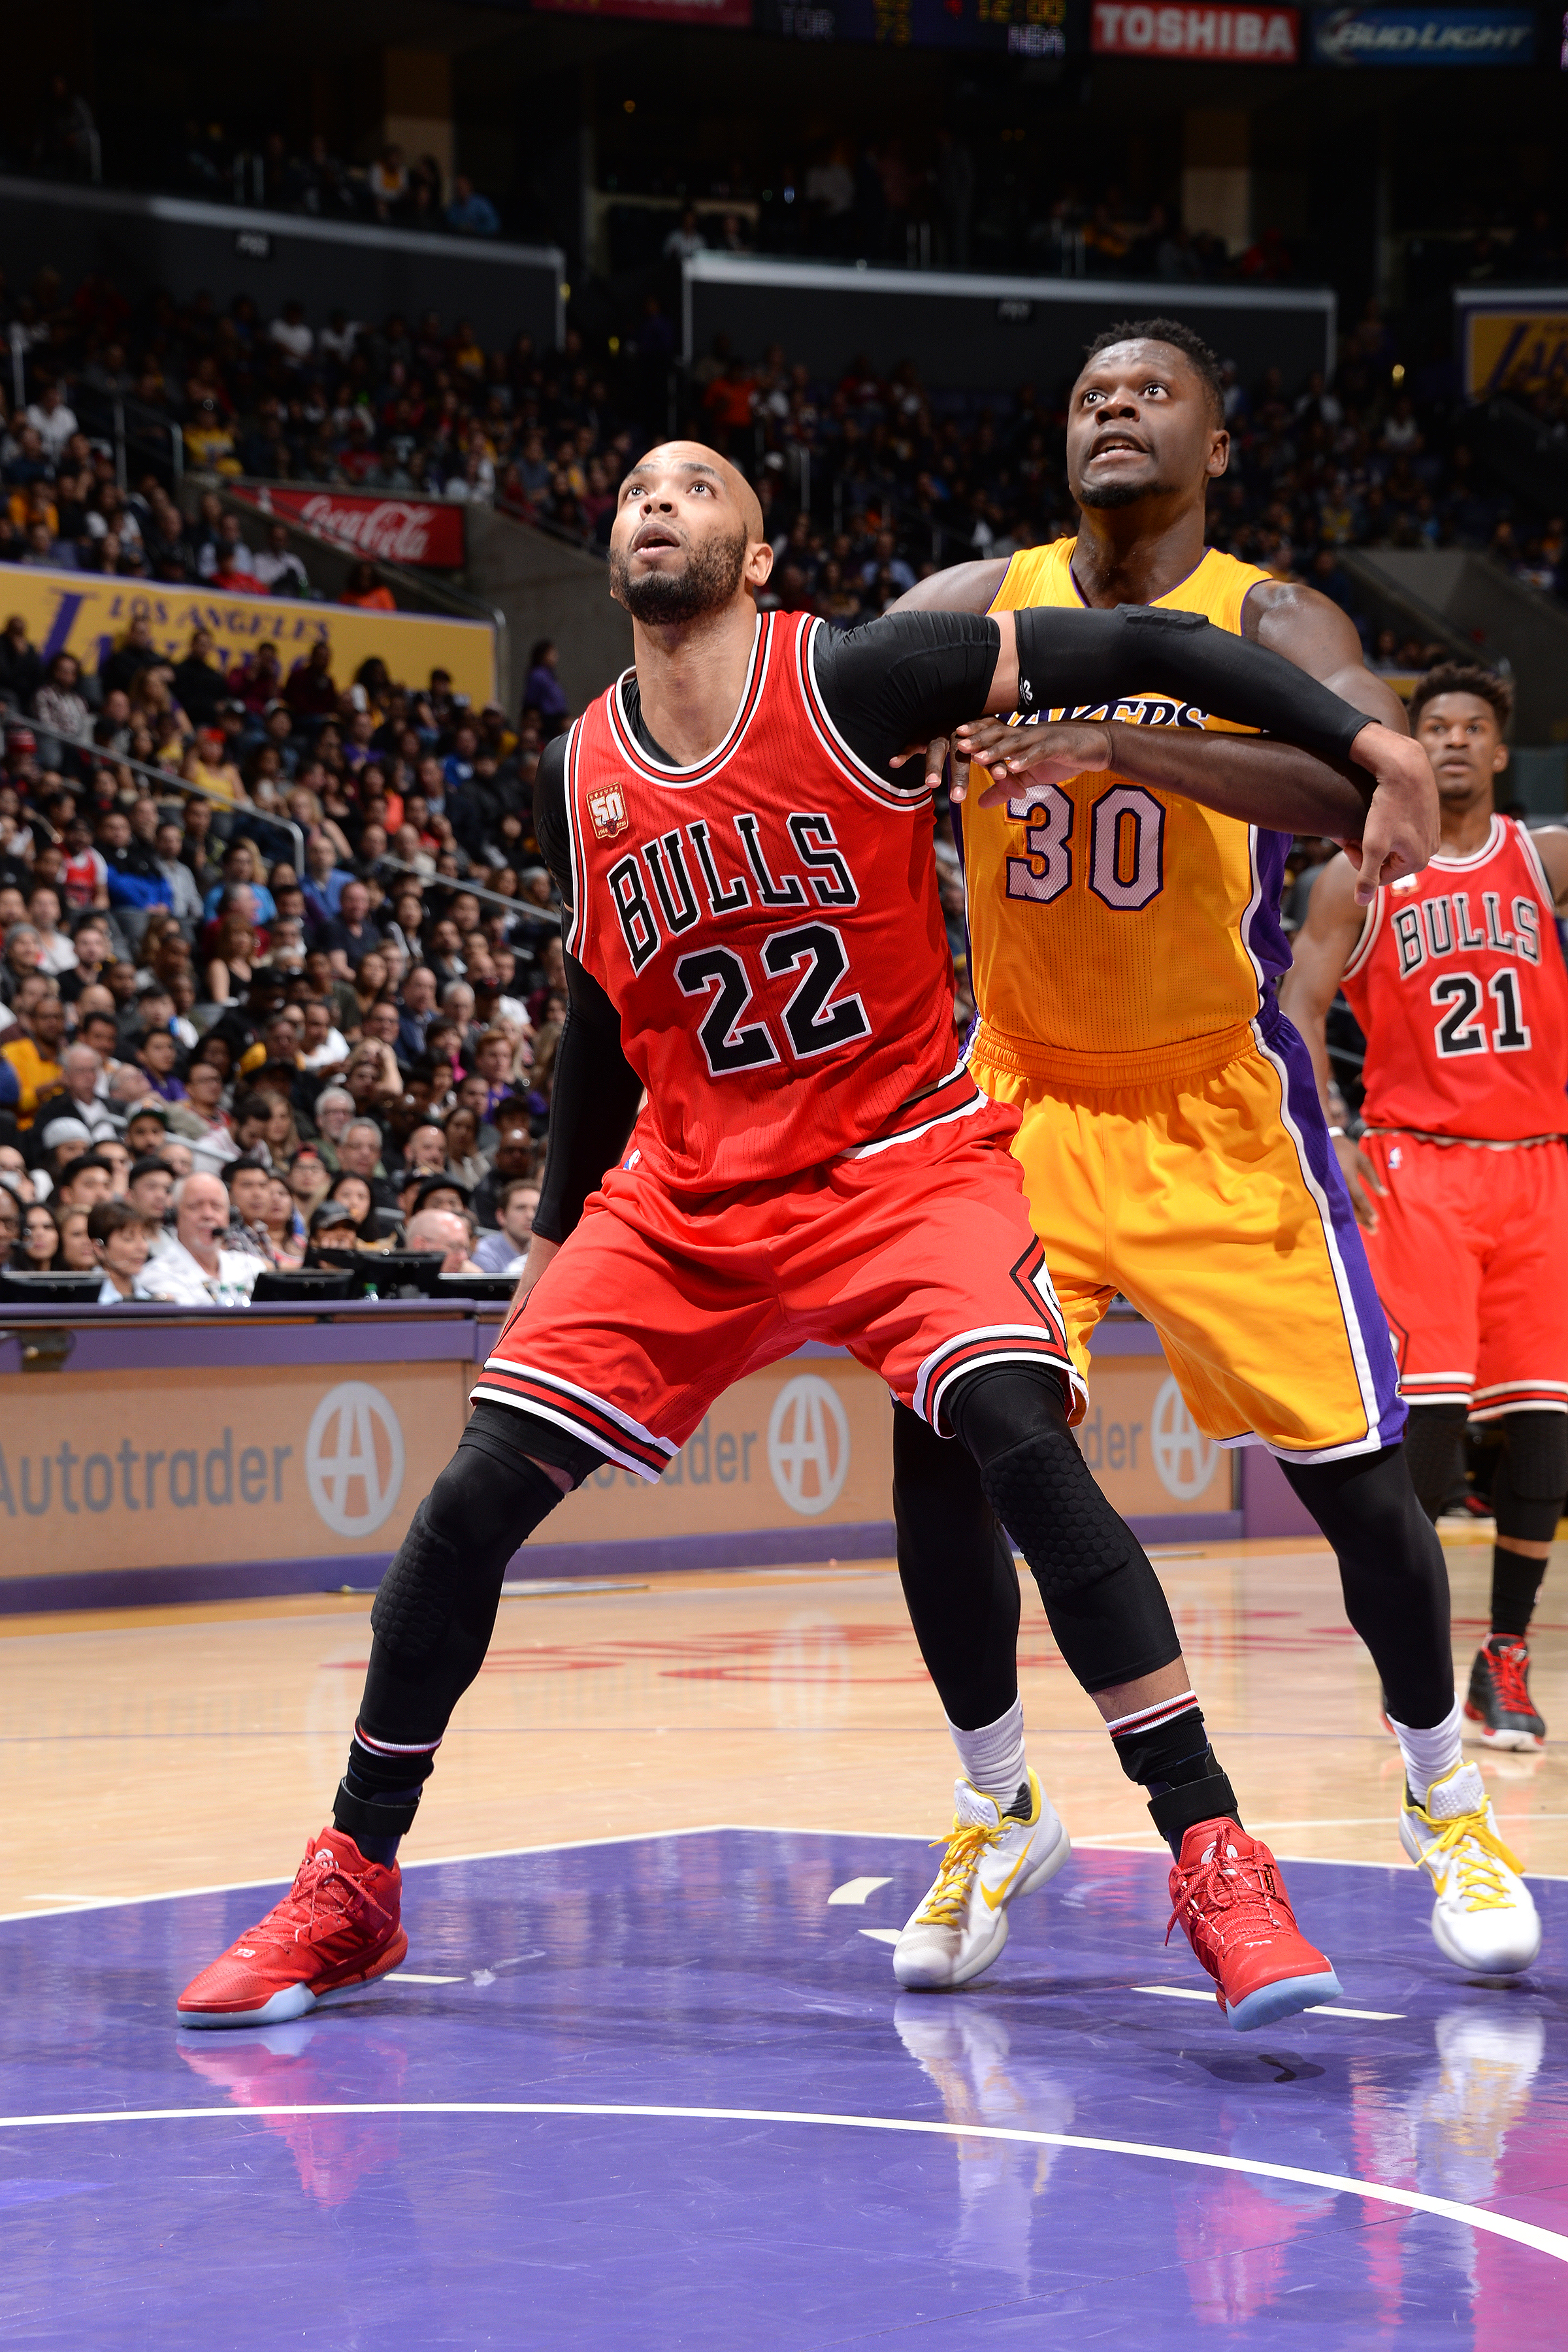 LOS ANGELES, CA - JANUARY 28: Taj Gibson #22 of the Chicago Bulls boxes out against Julius Randle #30 of the Los Angeles Lakers during the game on January 28, 2016 at STAPLES Center in Los Angeles, California. (Photo by Andrew D. Bernstein/NBAE via Getty